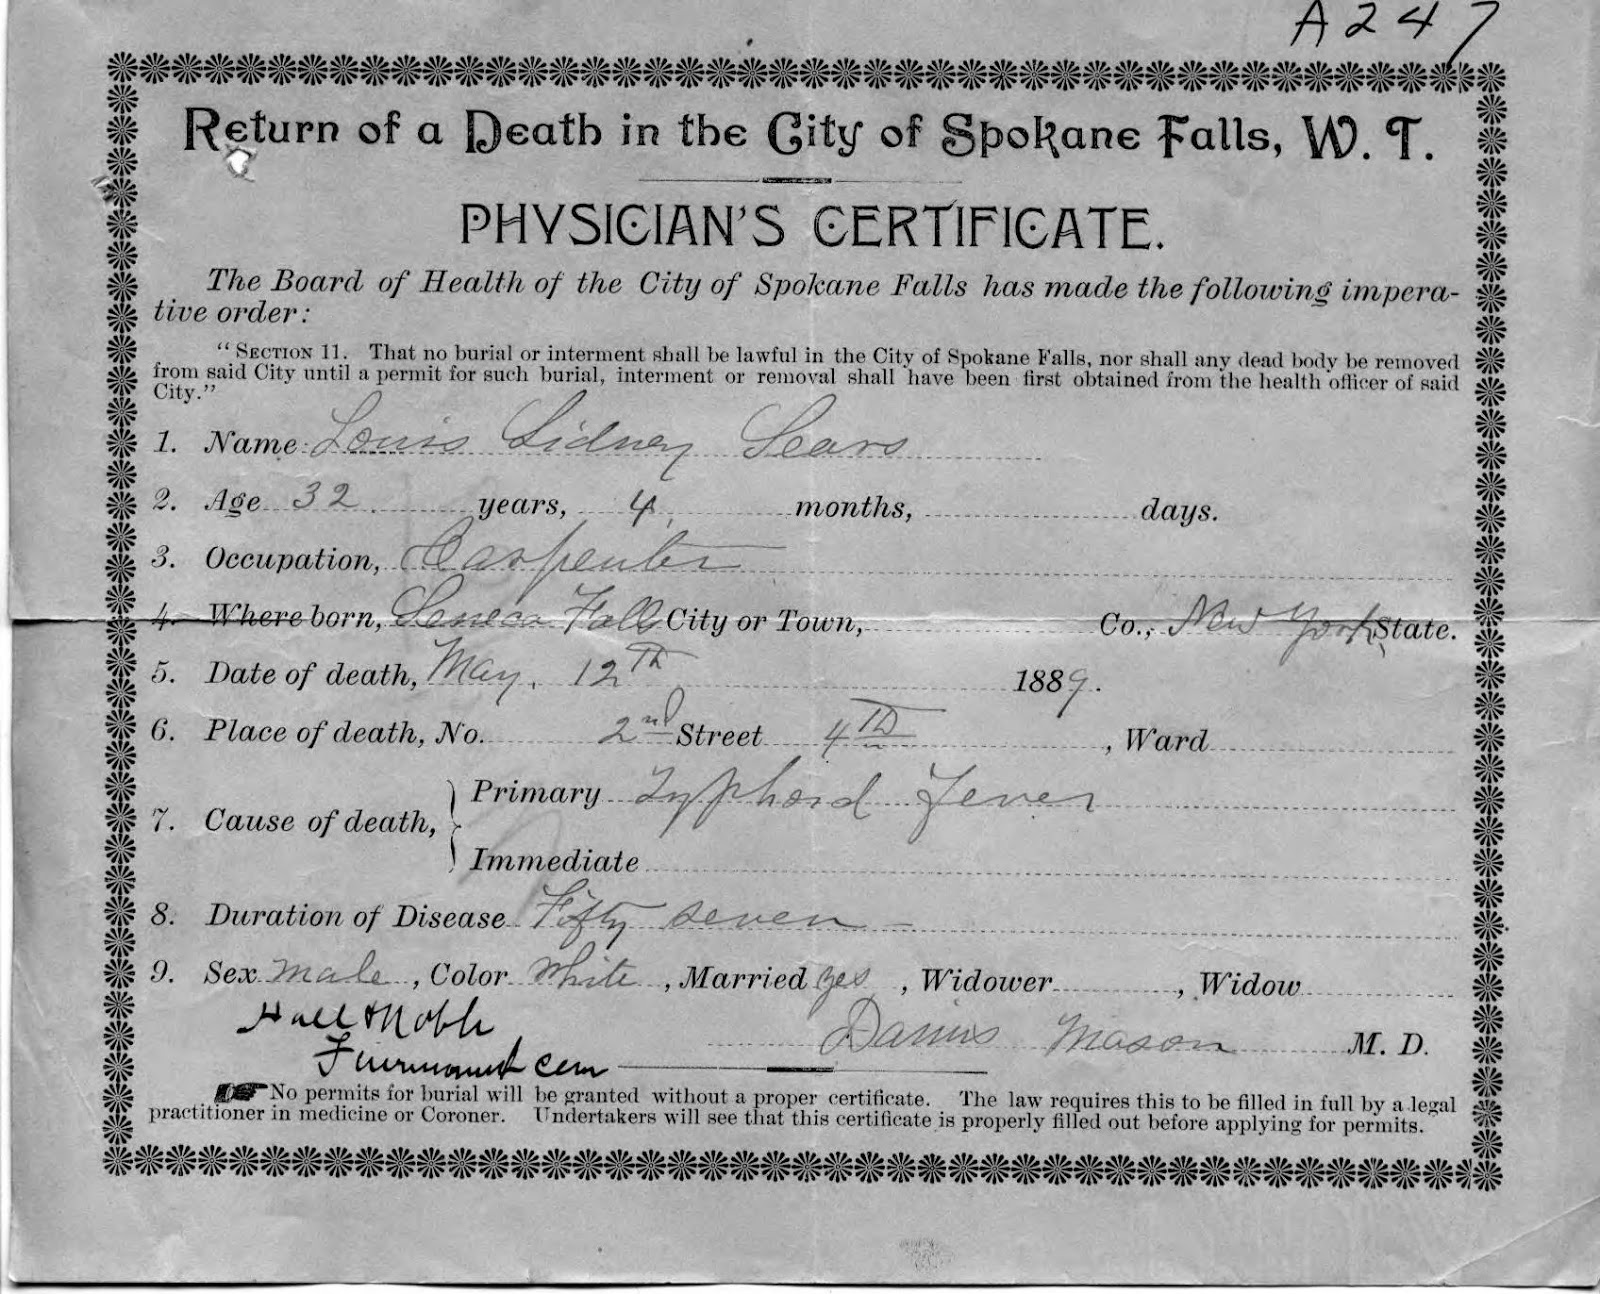 Eastern washington genealogical society blog april 2014 the certificate states that he was a carpenter born in seneca falls new york and died of typhoid fever the duration of the disease is noted to be fifty xflitez Choice Image